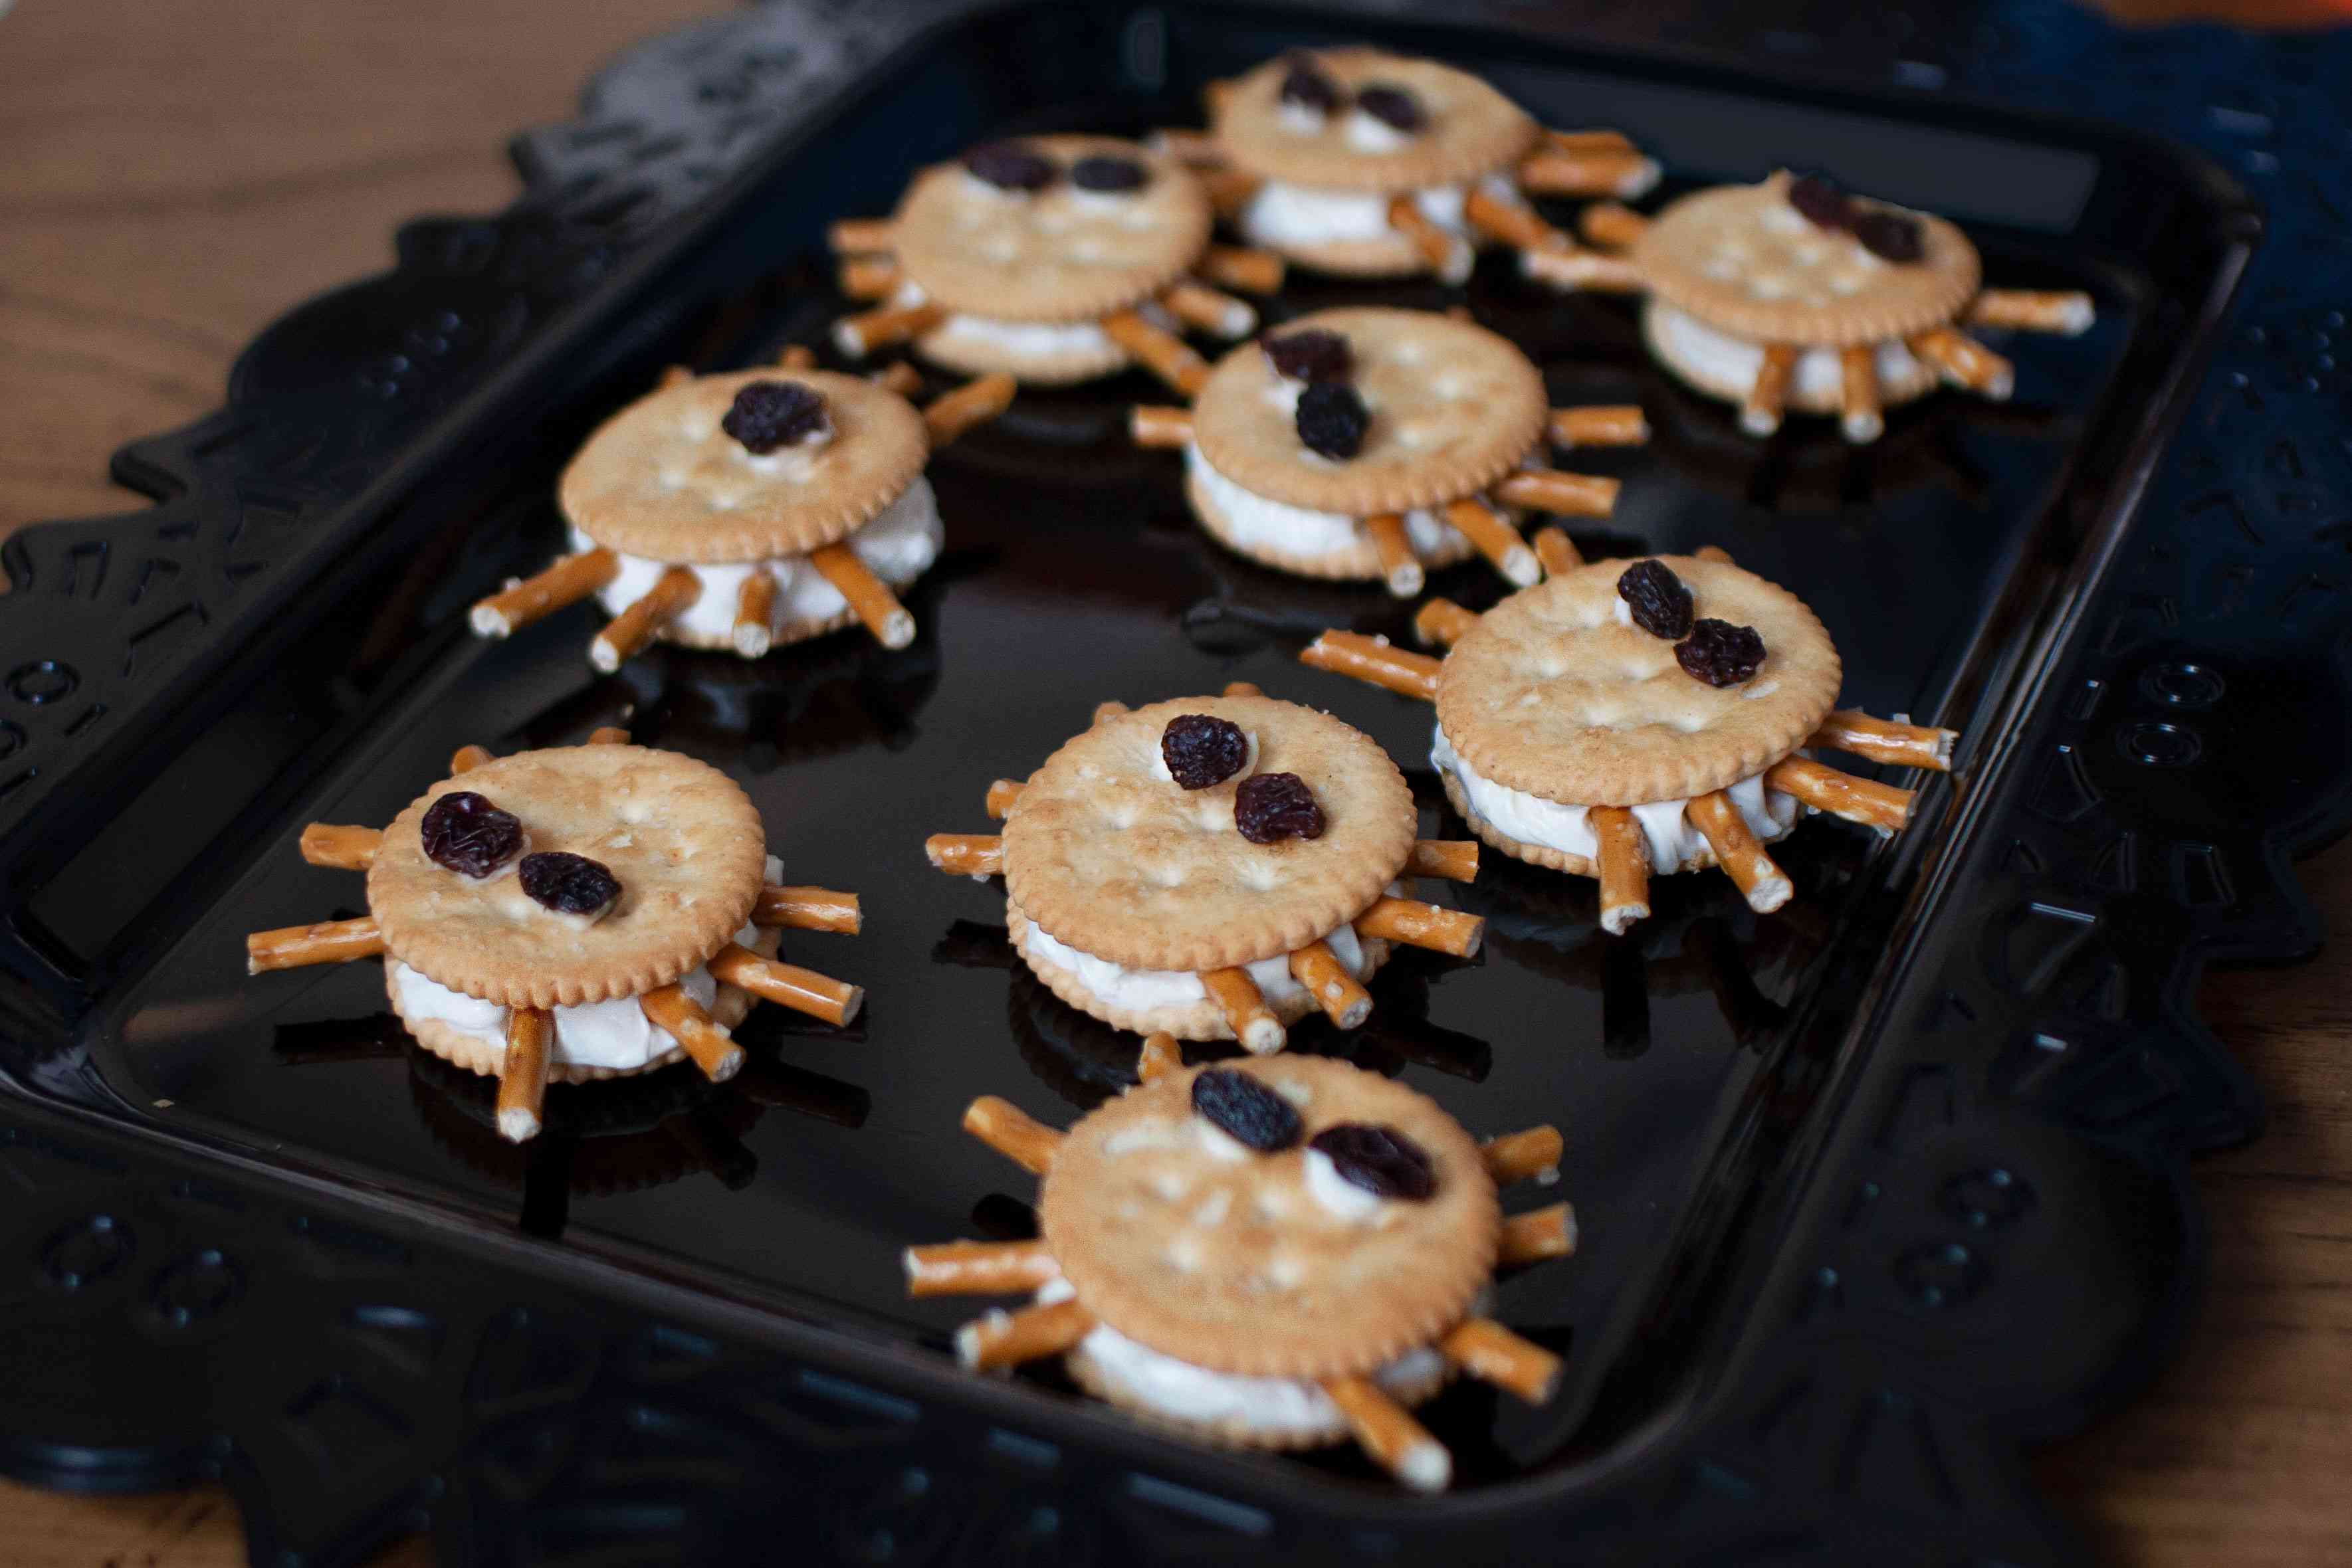 Spiders made from crackers and pretzels